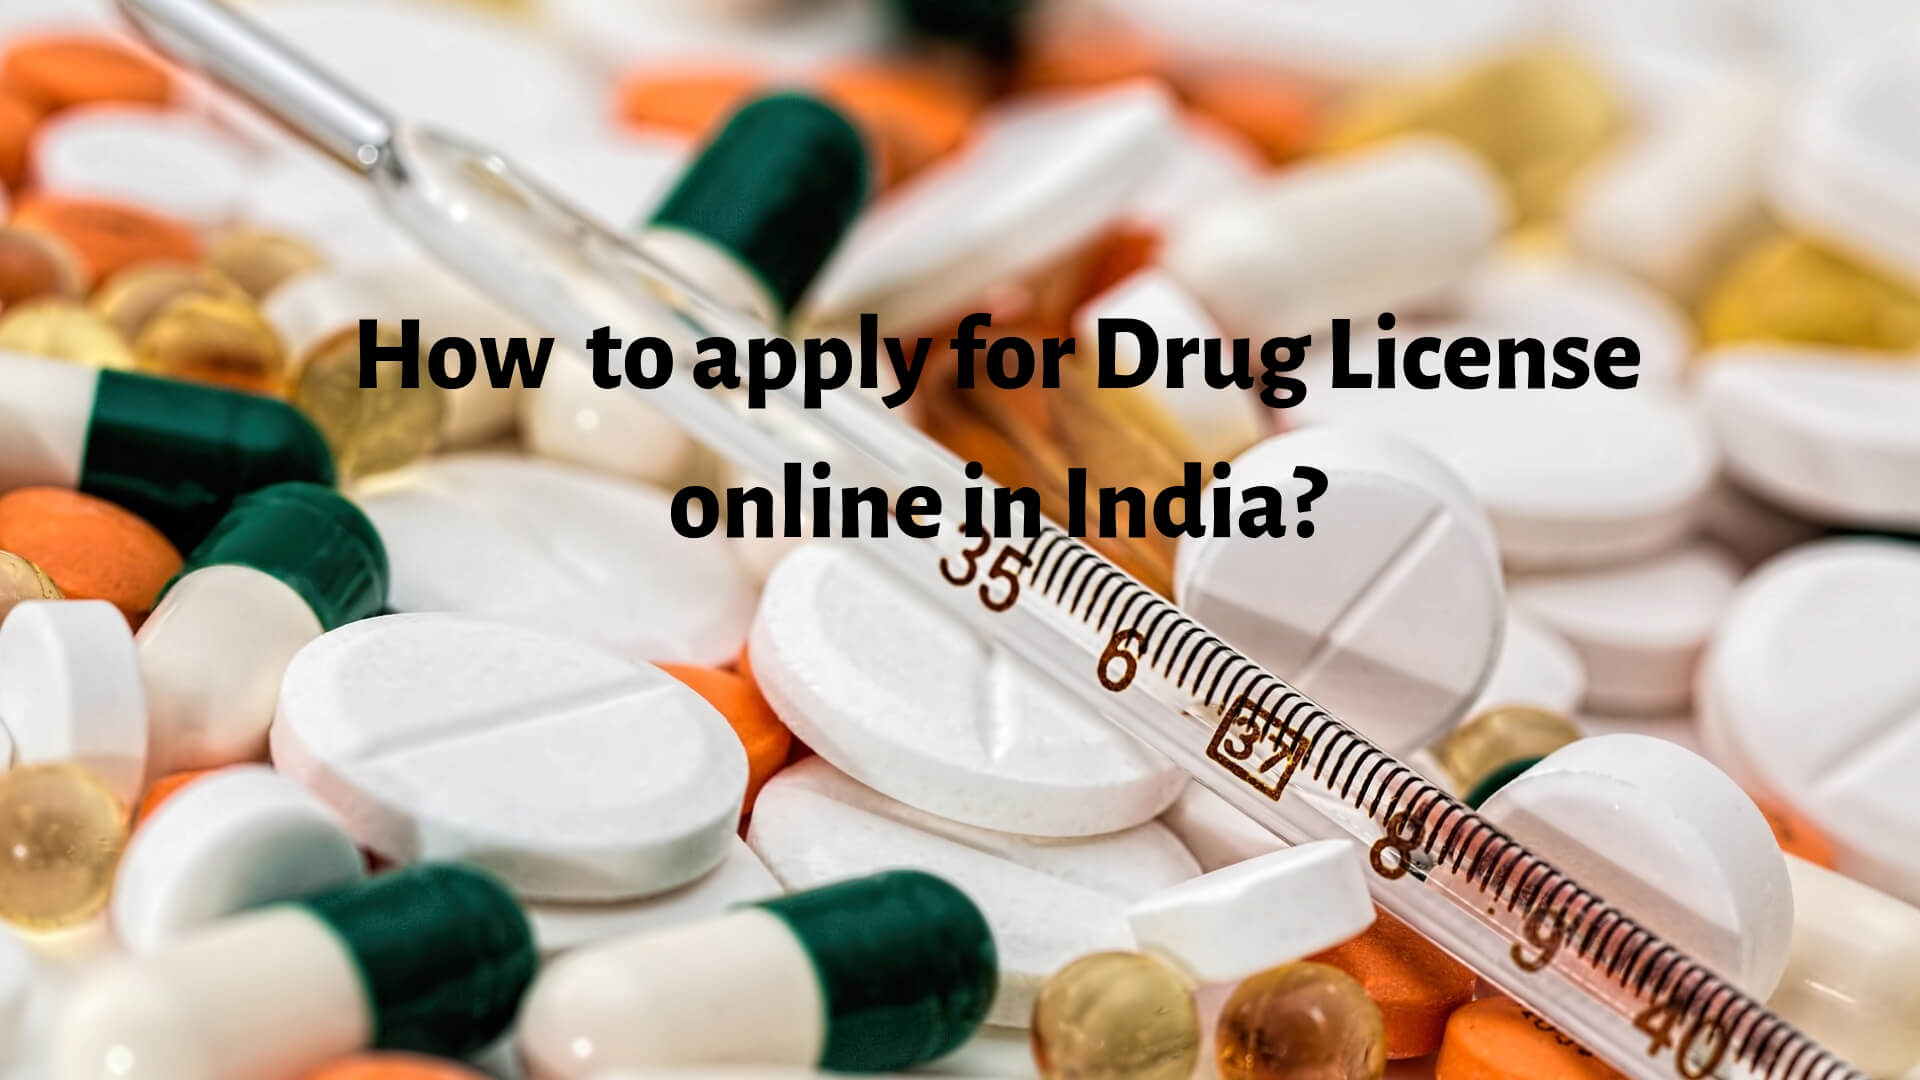 Drug License online in India